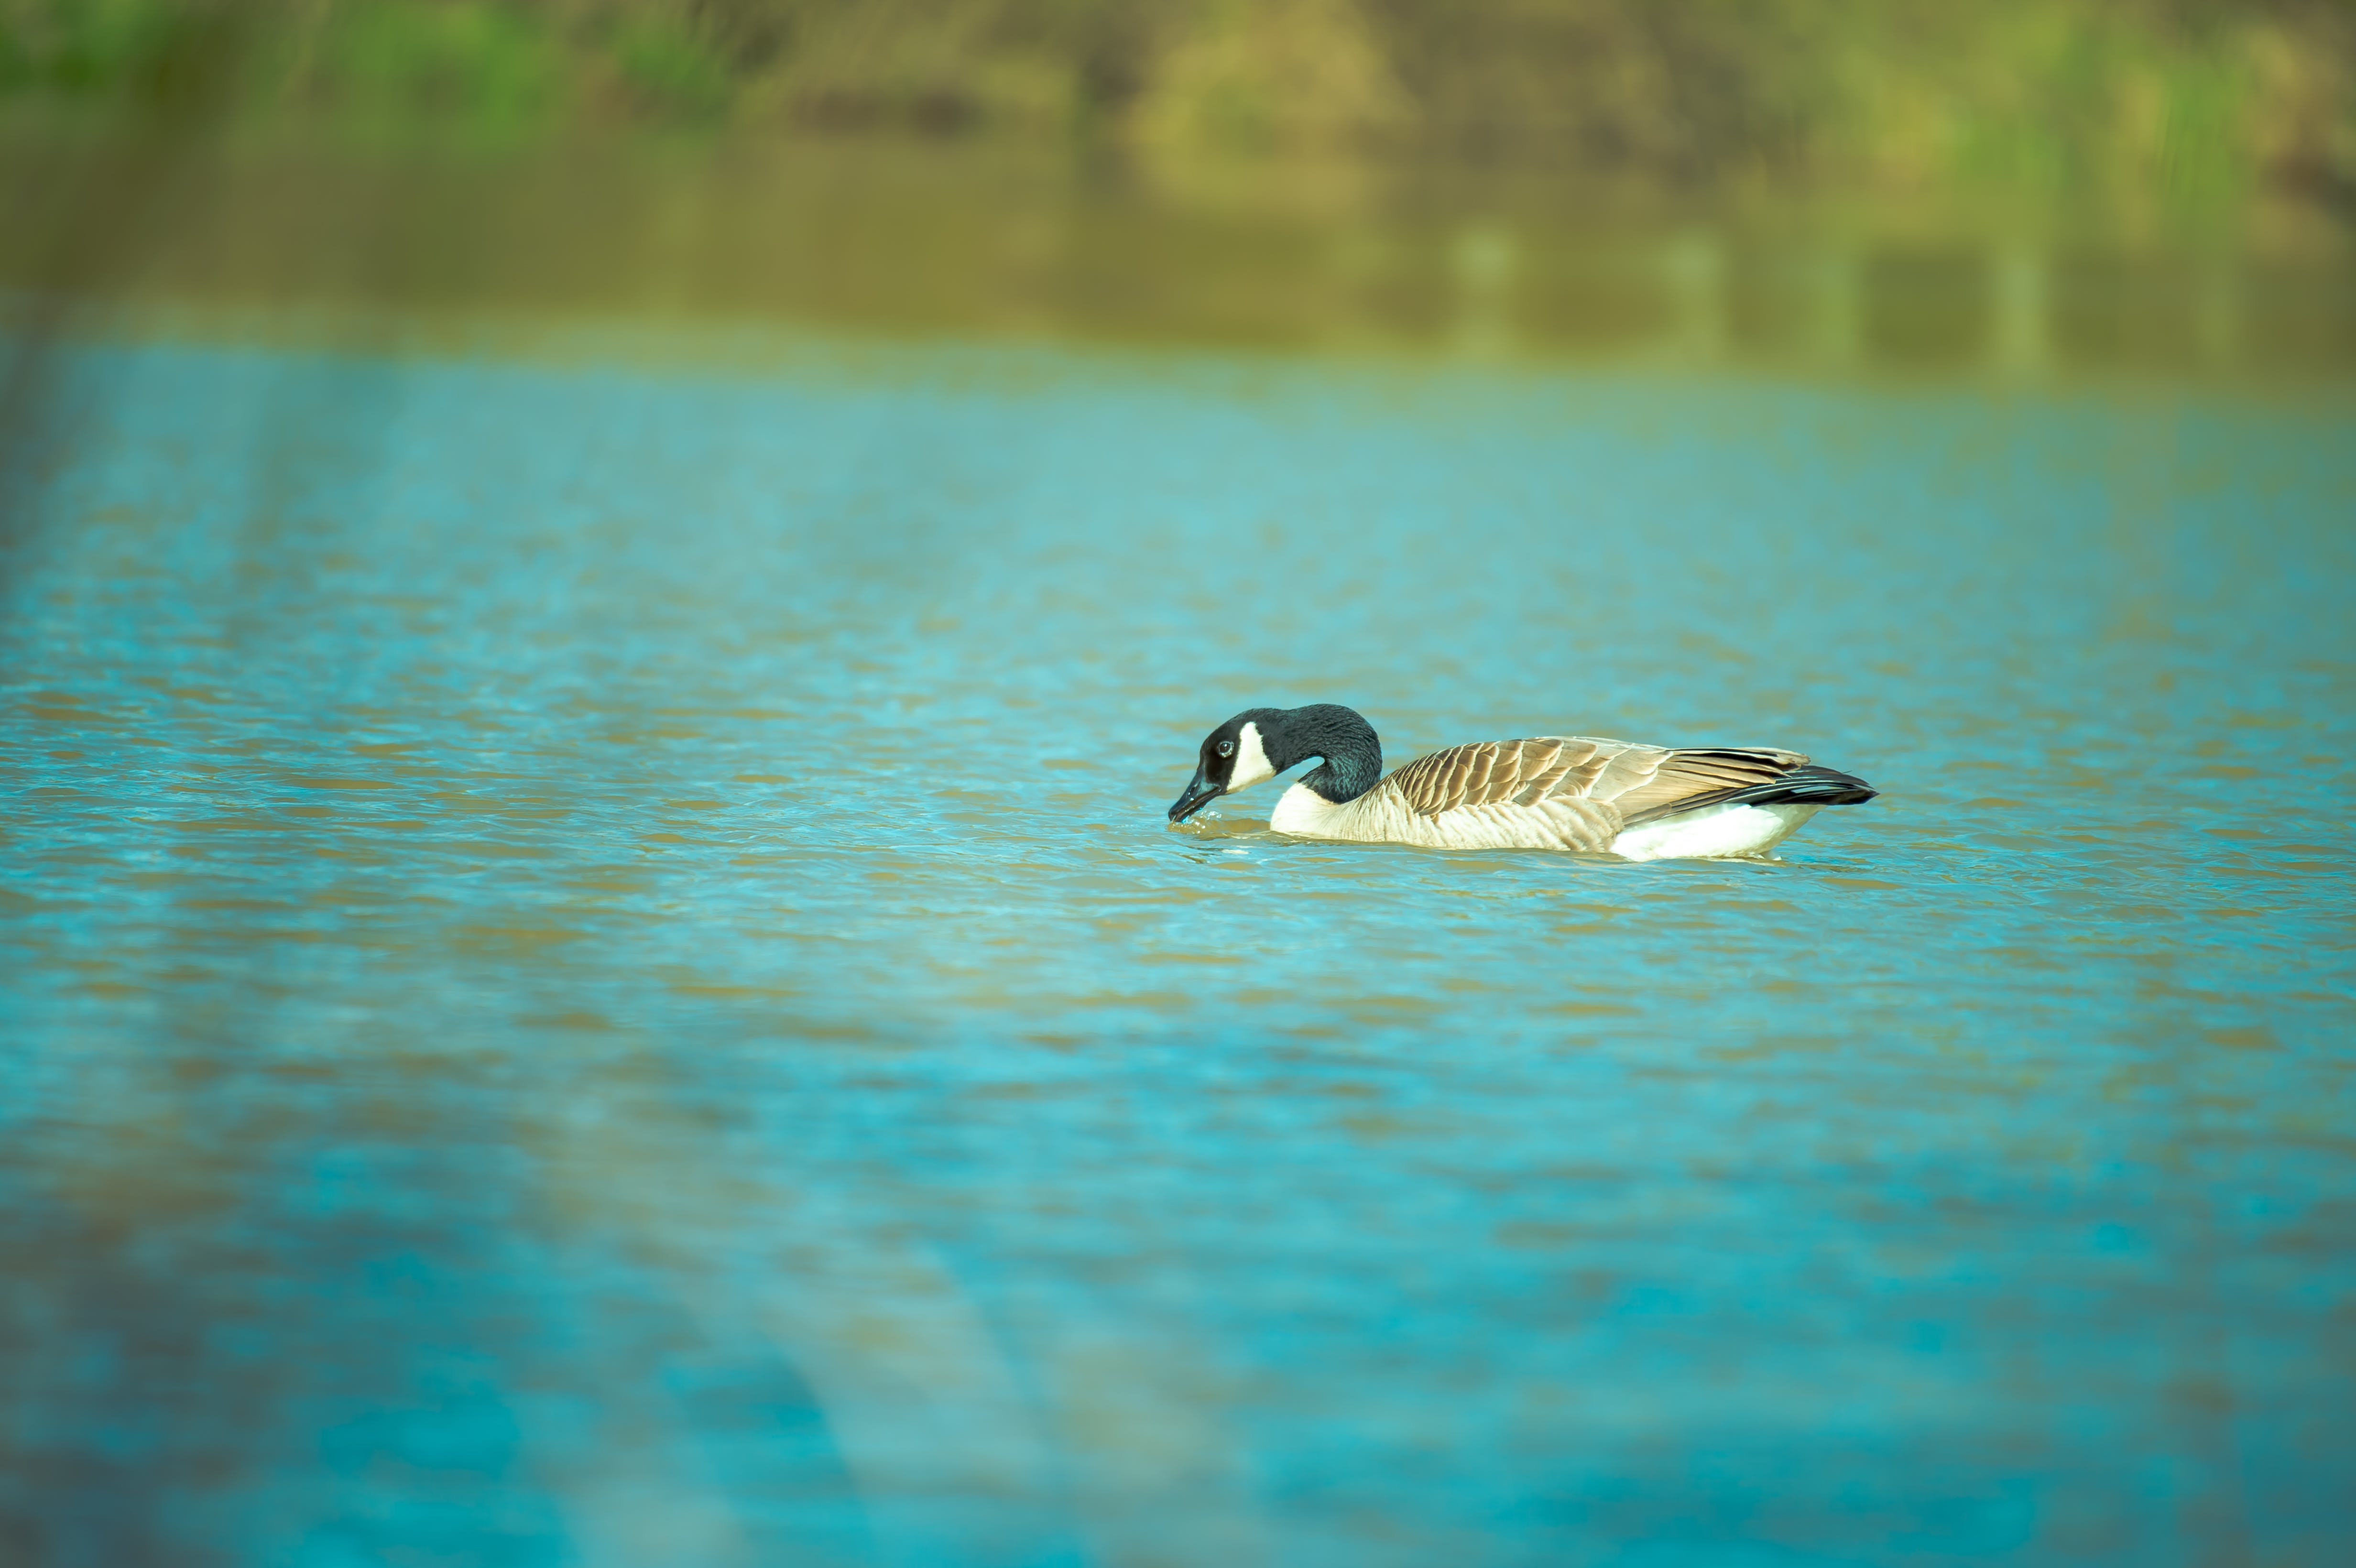 Brown and Black Duck on Body of Water